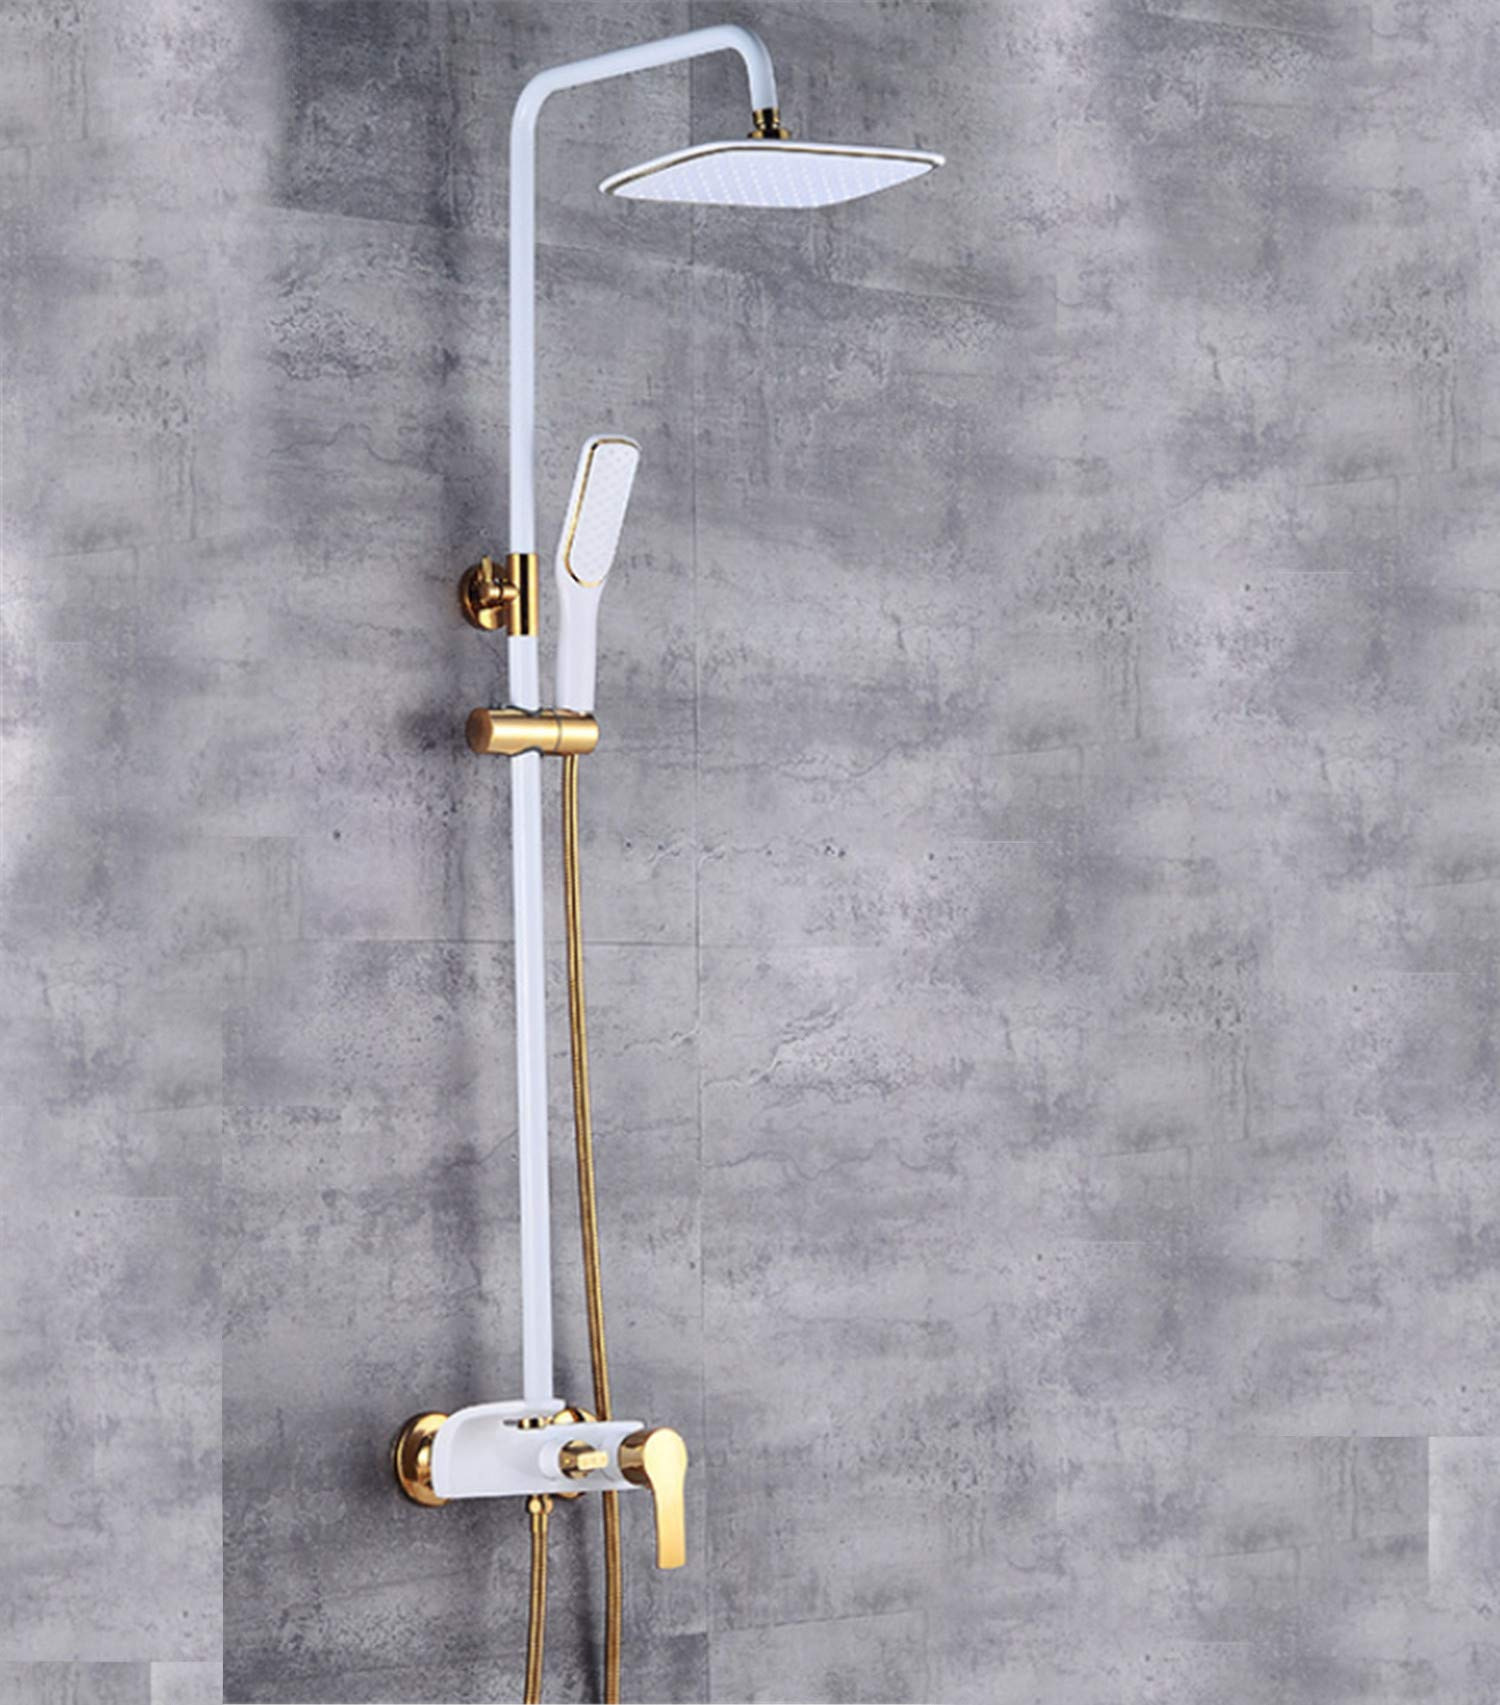 UNIQUE-F Control Shower System Luxury Set Top Spray Rainy Rotating Third Gear Adjusting Portable Lifting Rod 2 Colors